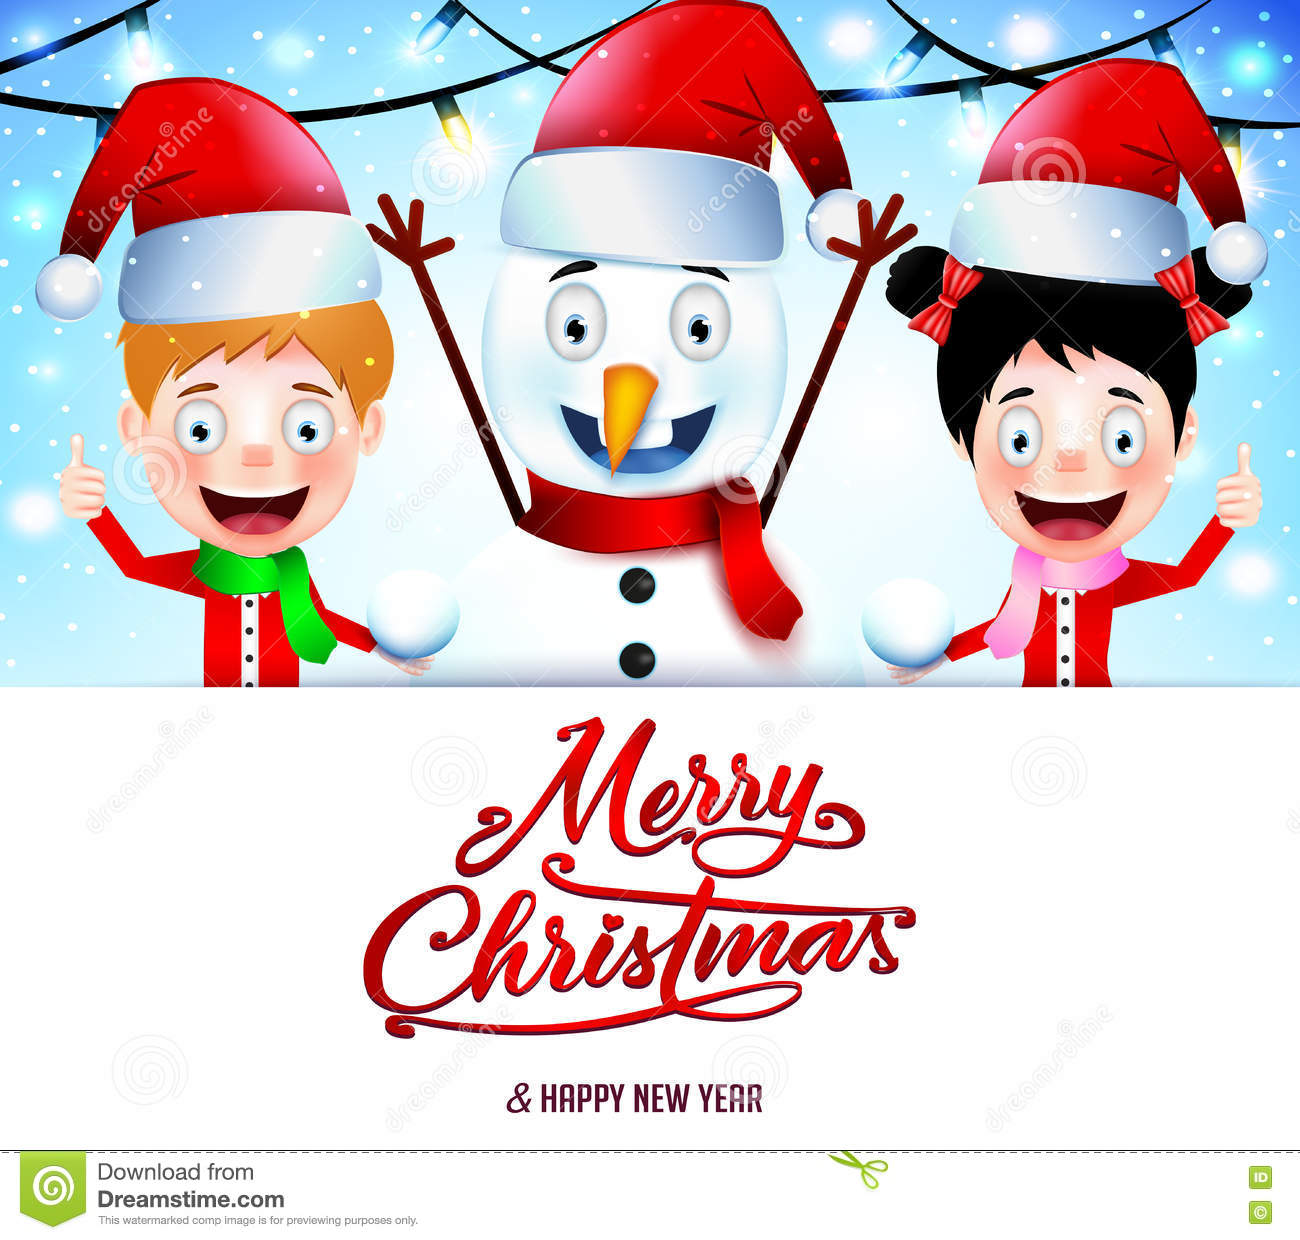 Christmas Message On White Background With Smiling Kids And Snowman ...